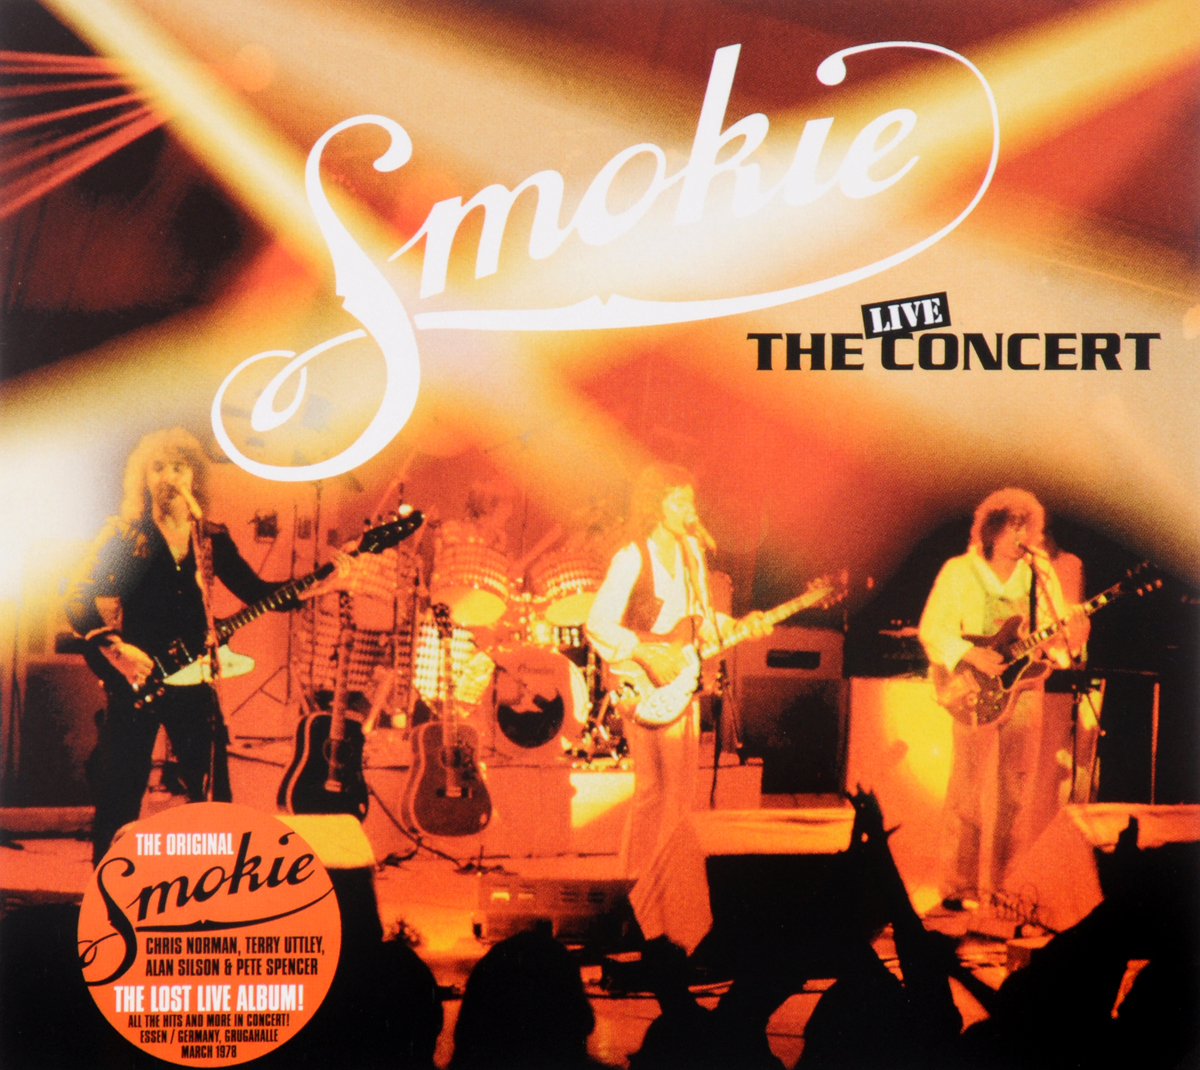 Smokie. The Live Concert